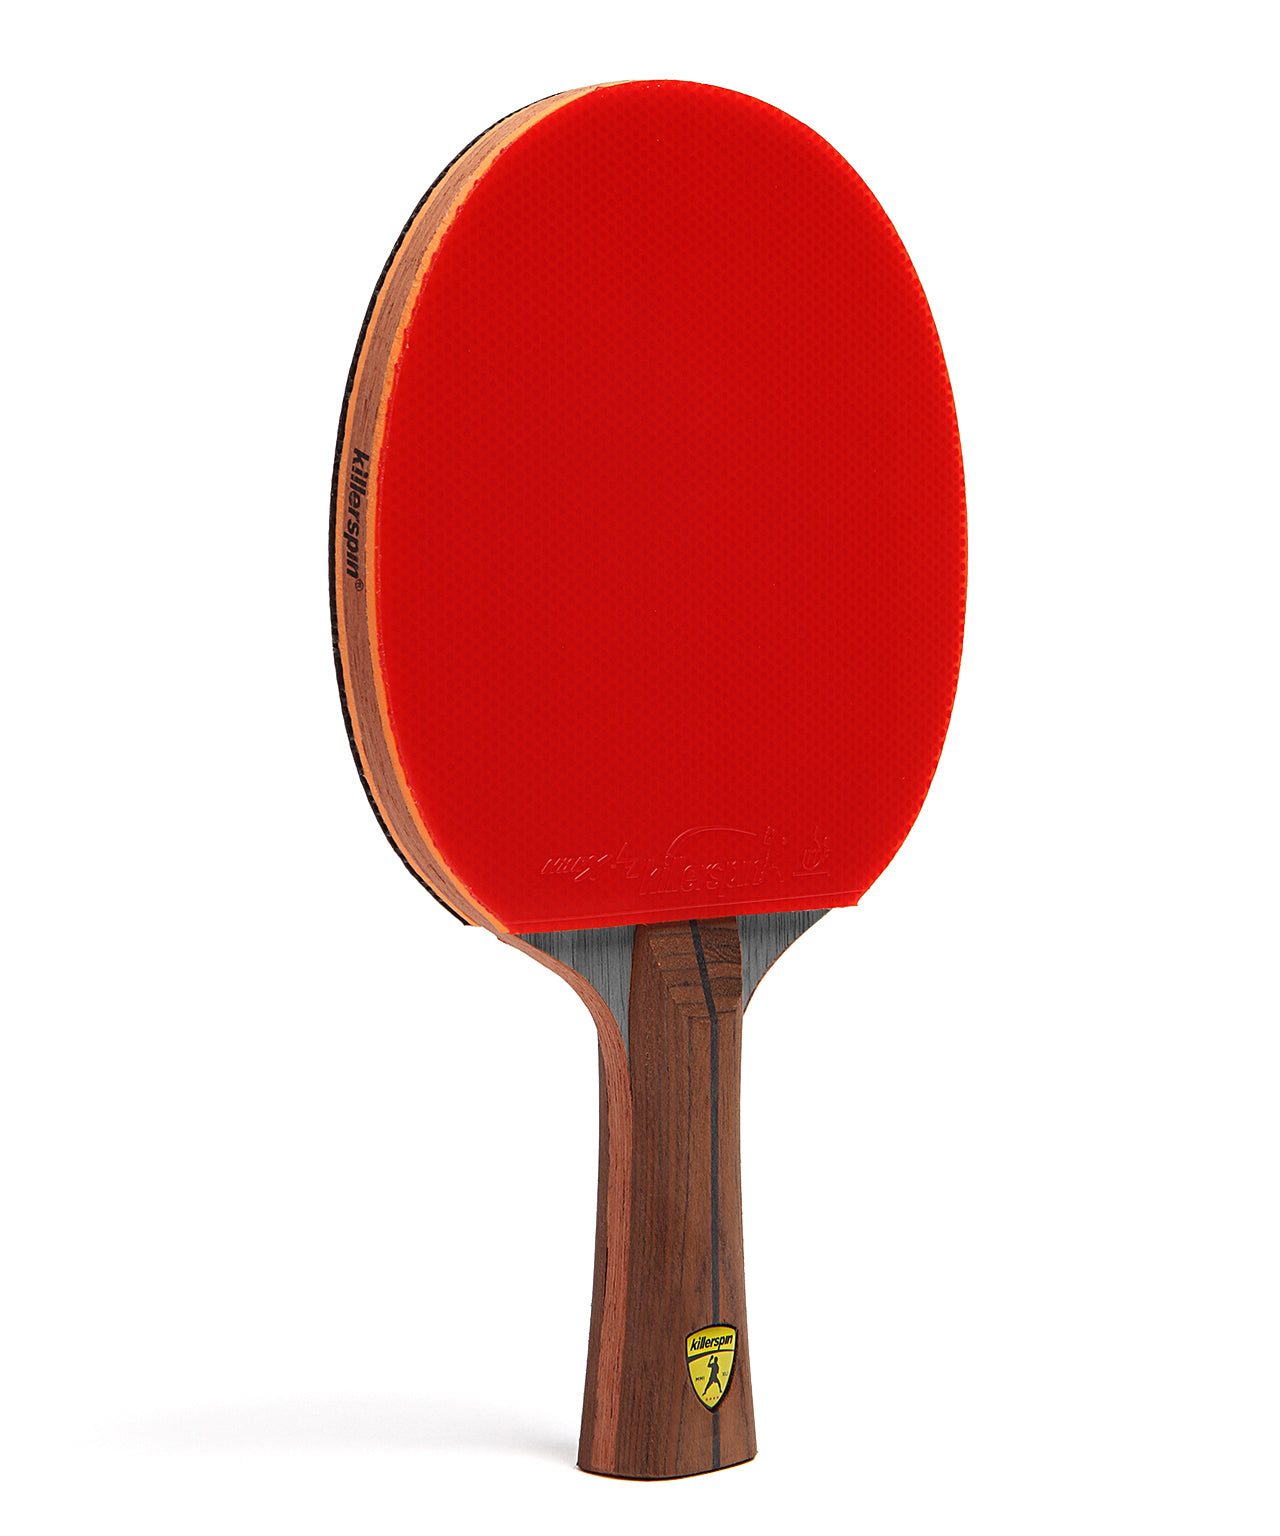 Killerspin Ping Pong Racket Jet800 Speed N2 - Red Rubber